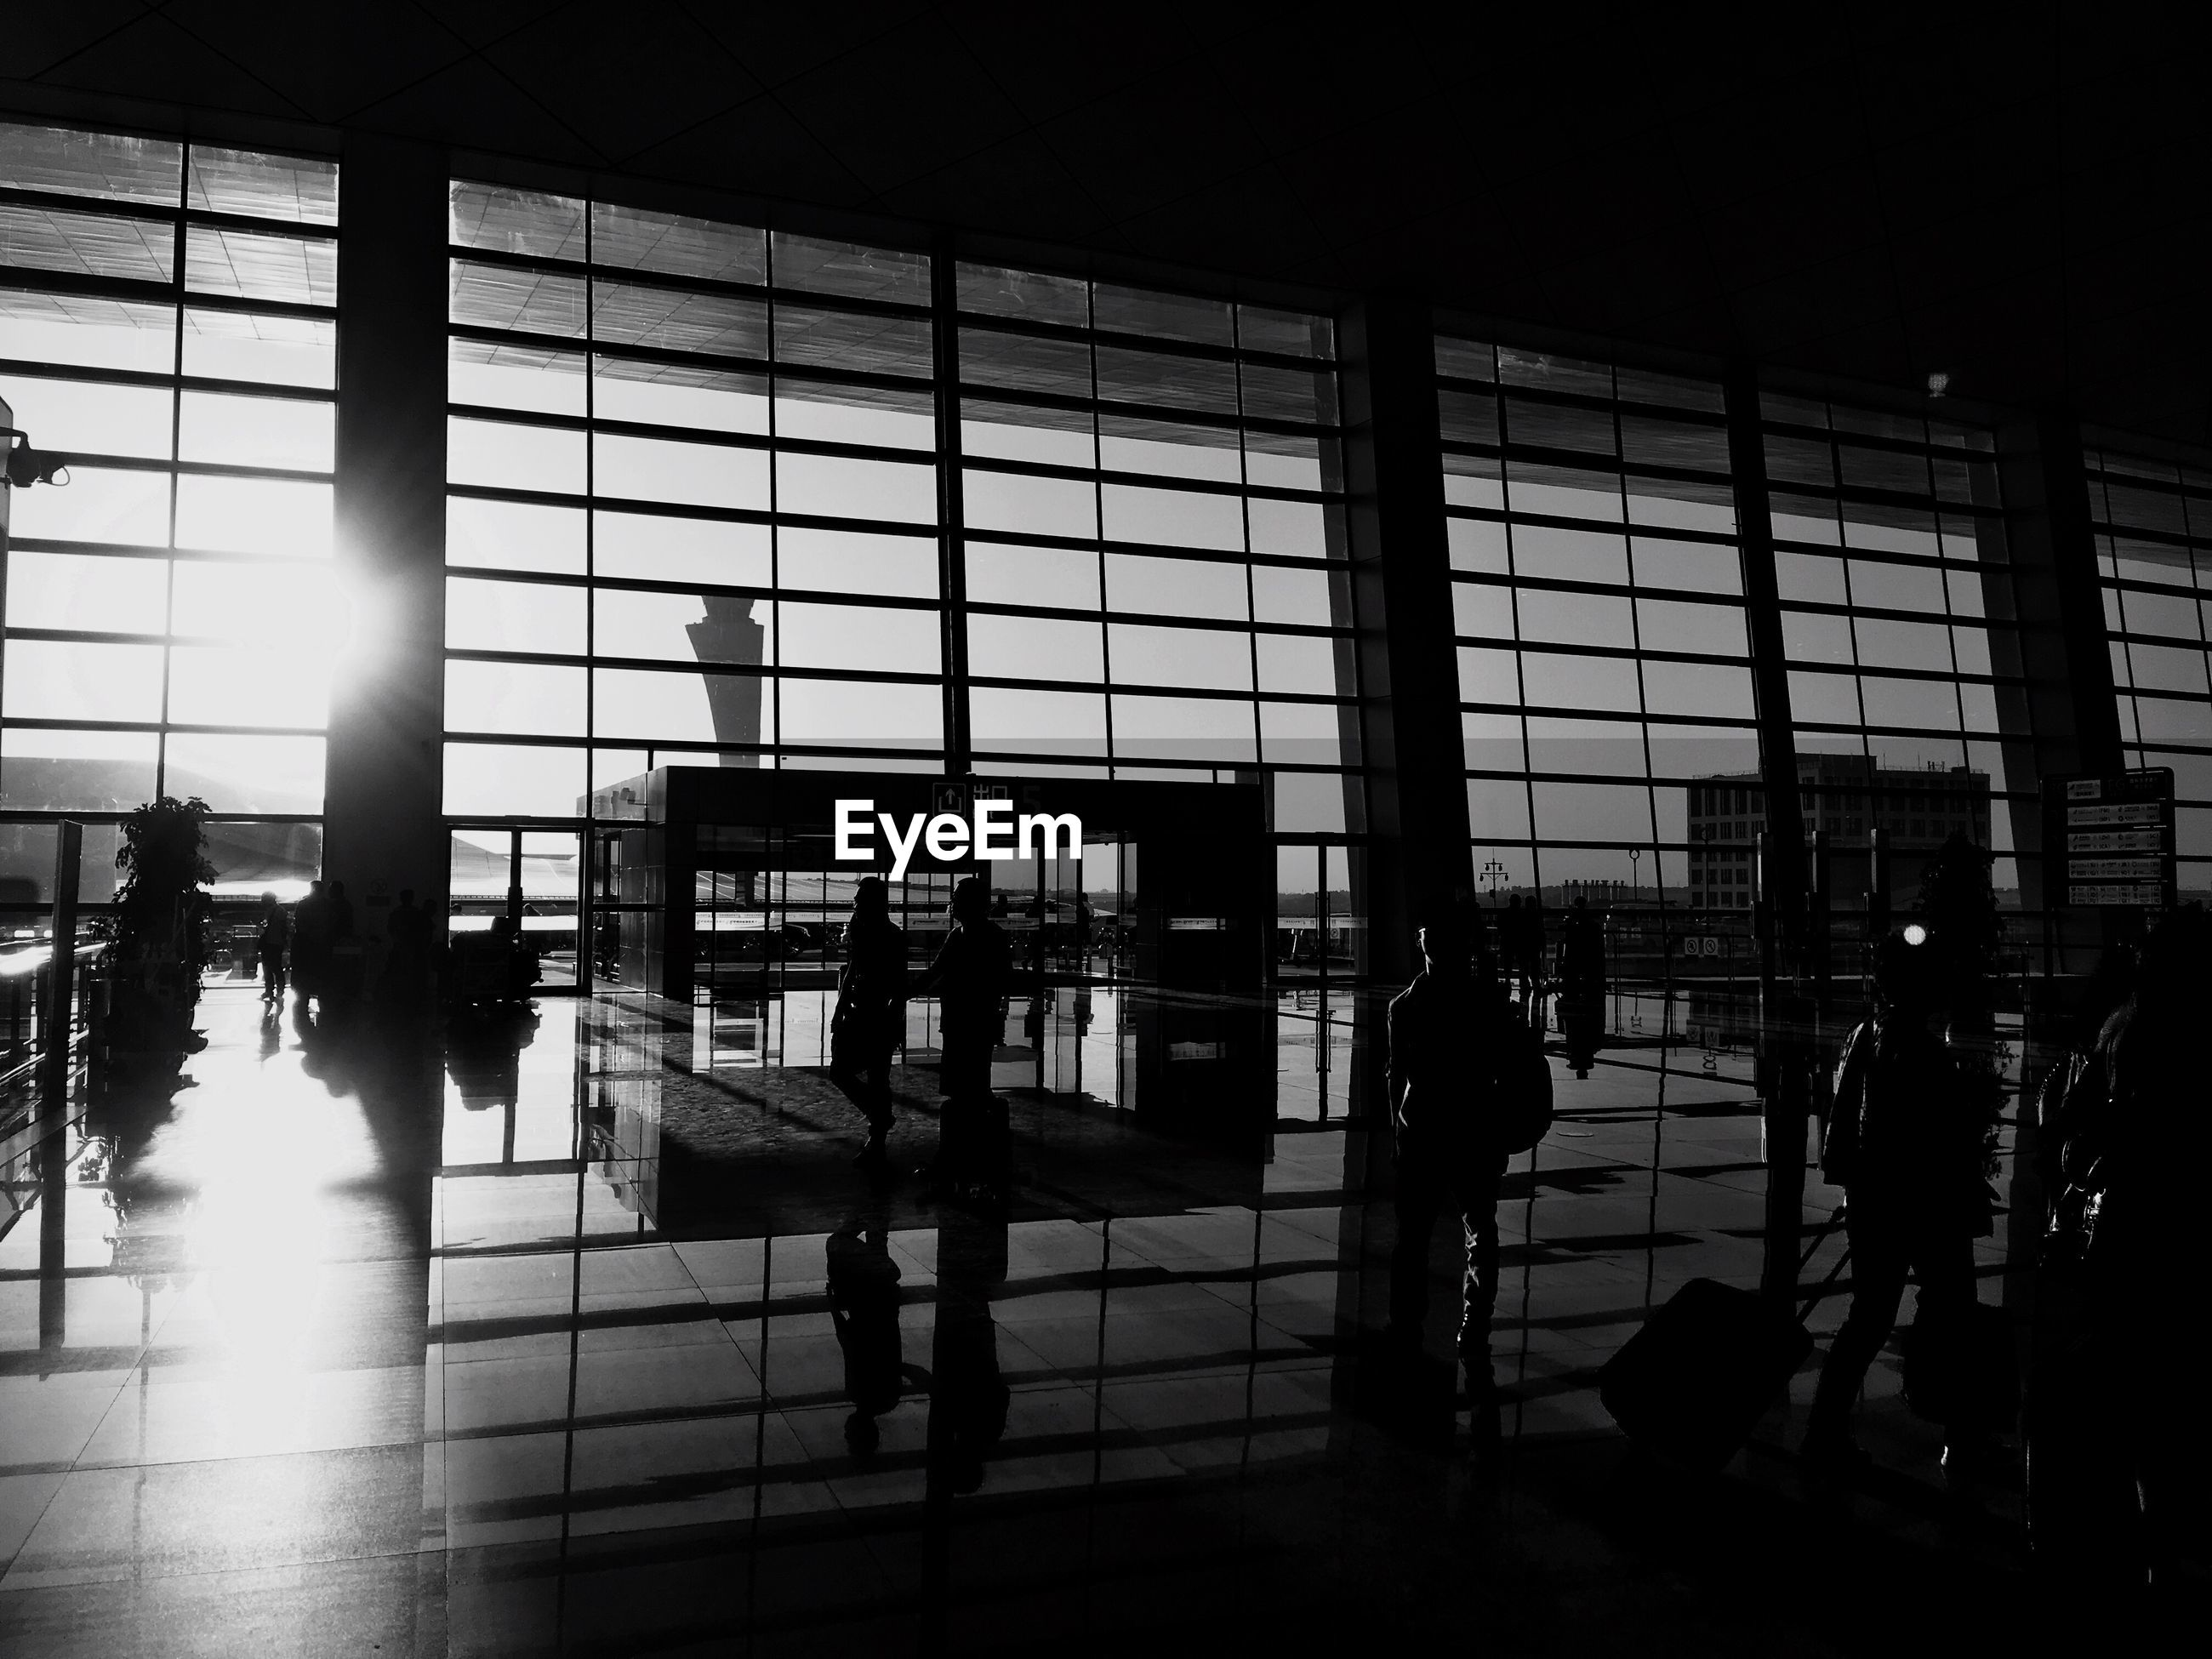 indoors, window, glass - material, built structure, architecture, airport, chair, transparent, men, silhouette, person, modern, table, city, flooring, reflection, lifestyles, restaurant, sunlight